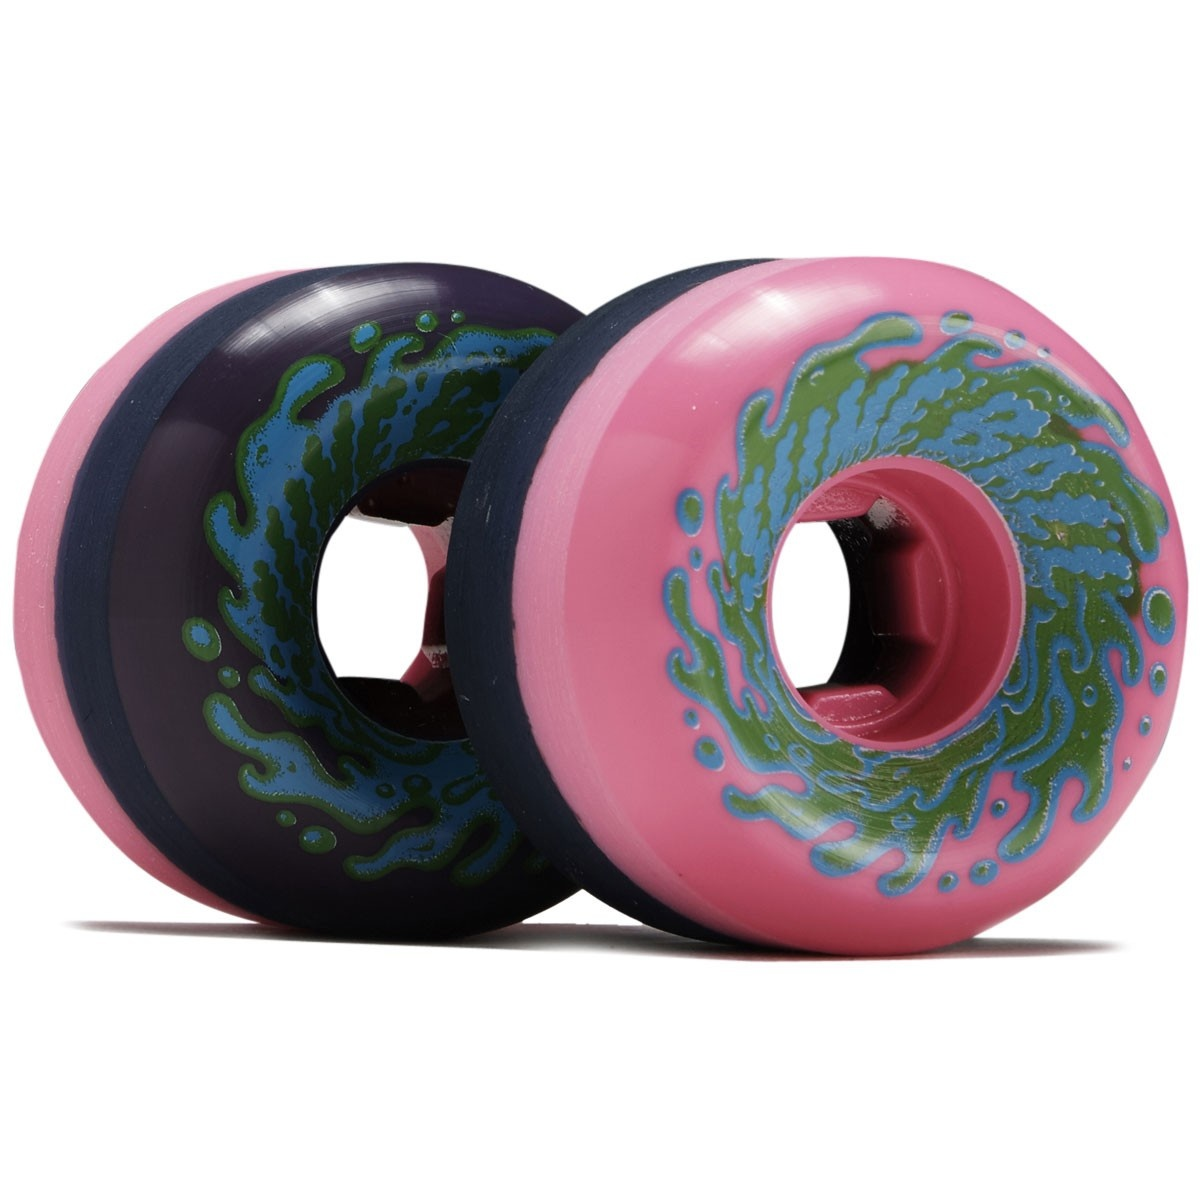 slime balls 56mm double take vomit mini pink black 97a wheels